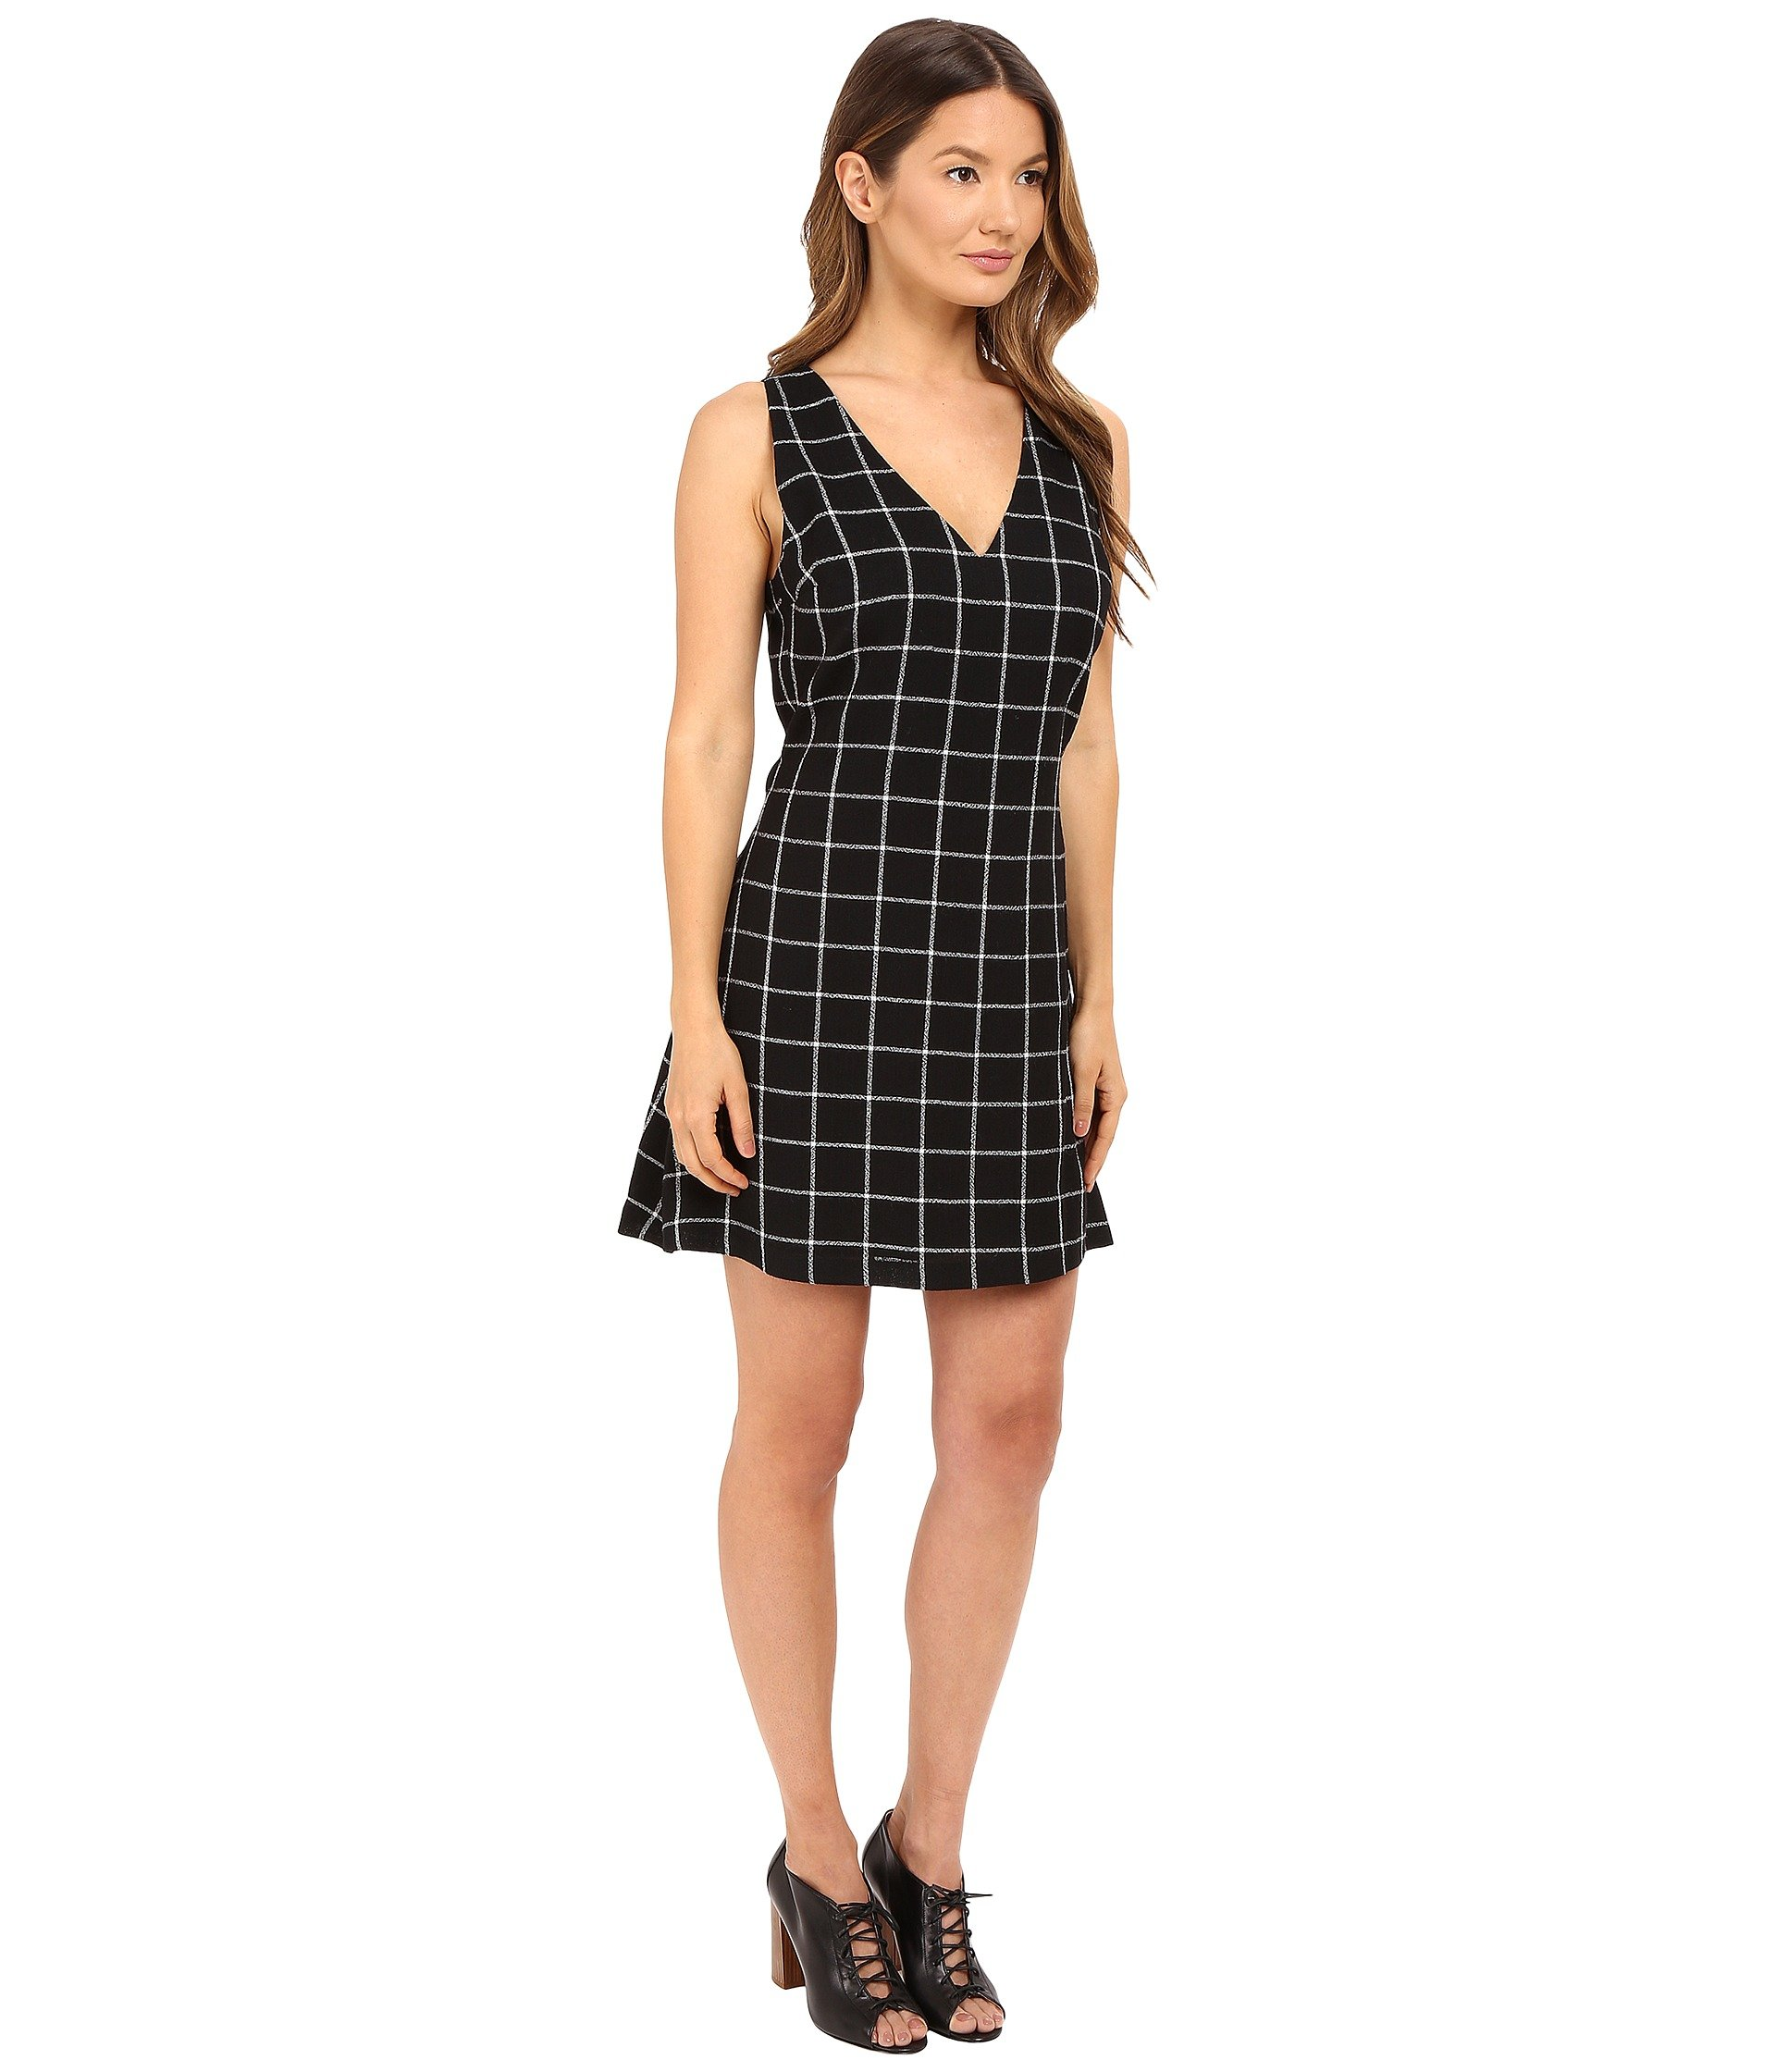 Sami & Jo short sleeve puff print inset sheath dress is a stunning stretch style with a boat neck front, and keyhole back. Semi-lined. Length: 38 inches. Self: 94% Polyester, 6% Spandex. Lining: % Polyester. Hand wash. Line dry.